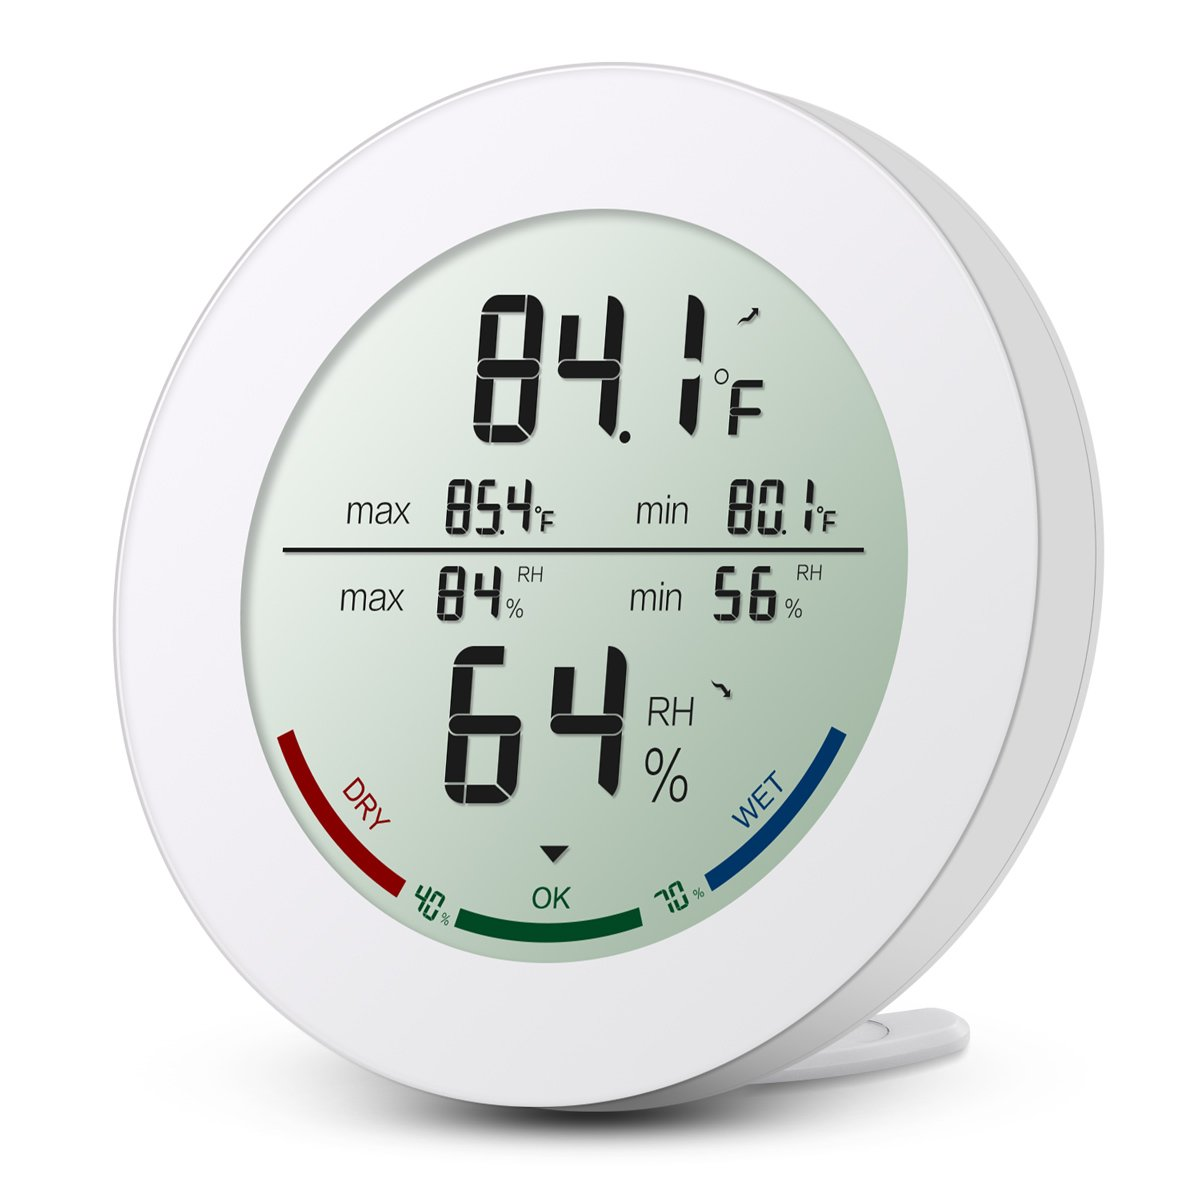 ORIA Indoor Hygrometer Thermometer, Digital Humidity Monitor, Temperature Humidity Gauge Meter, with 2.5 Inches LCD Display, ℃/℉ Switch, MIN/MAX Records, for Home, Car, Office, Greenhouse, Babyroom